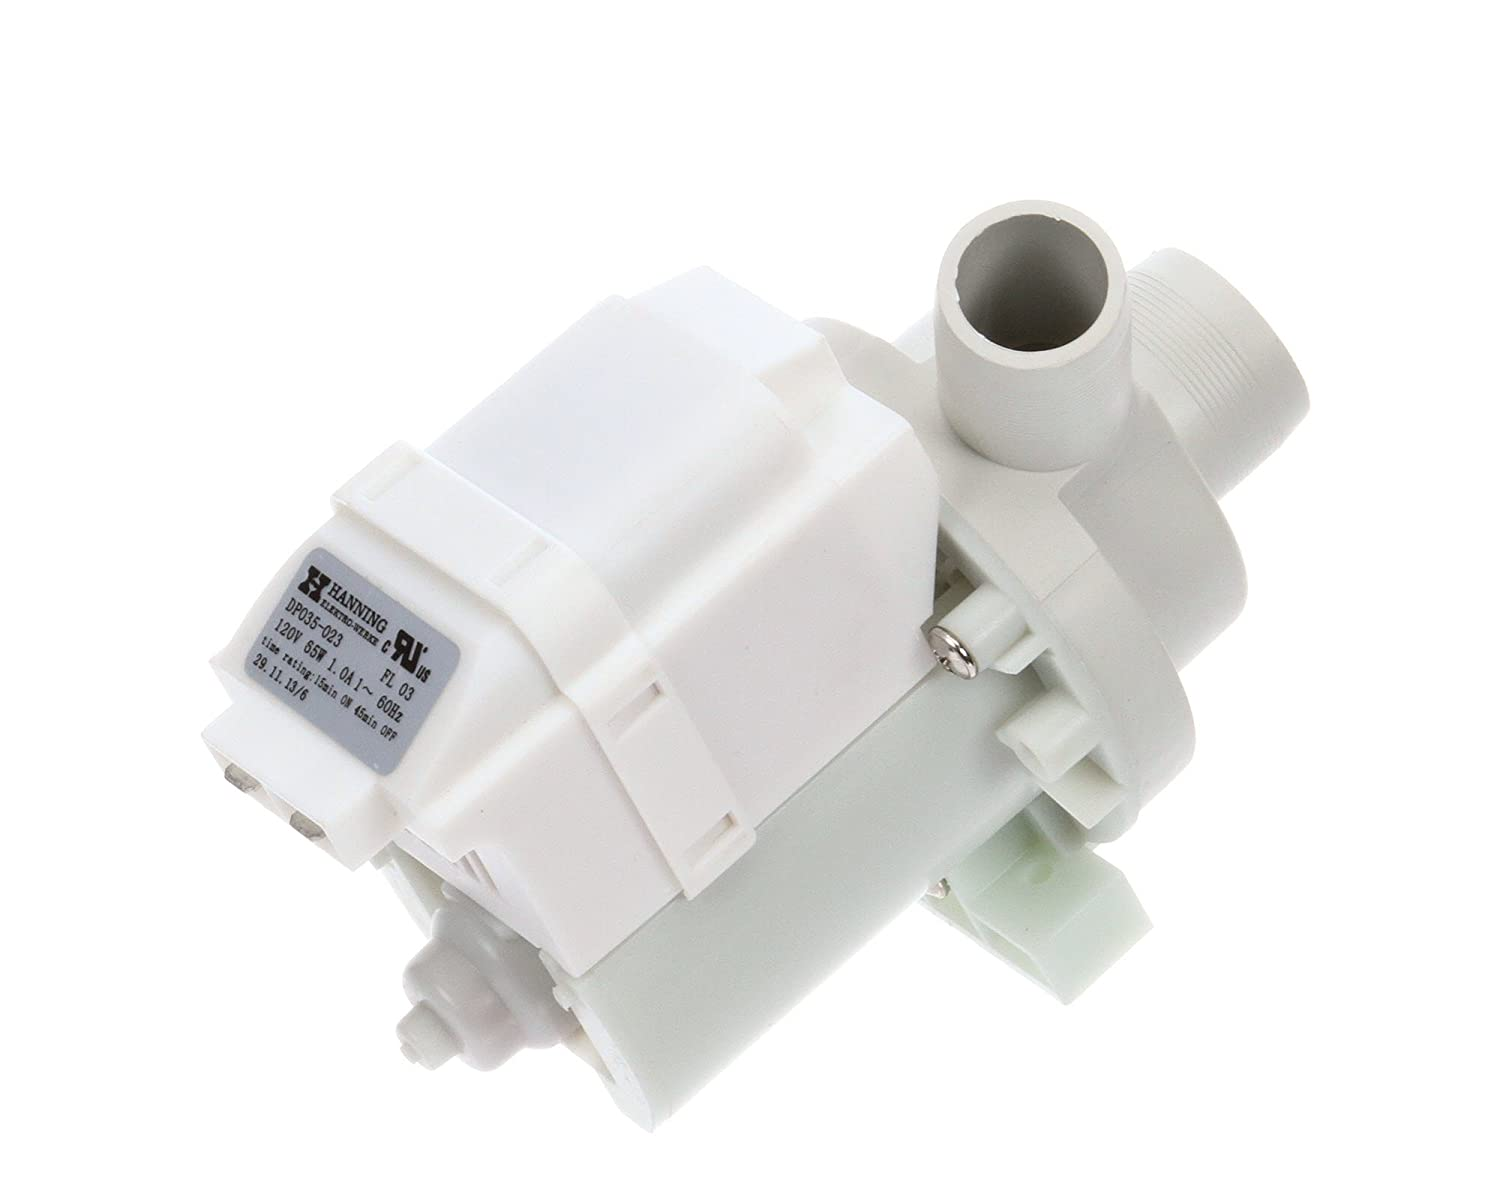 Outlet ☆ Free Shipping Champion Moyer Diebel 0512227 for Compatible Drain Max 66% OFF Pump